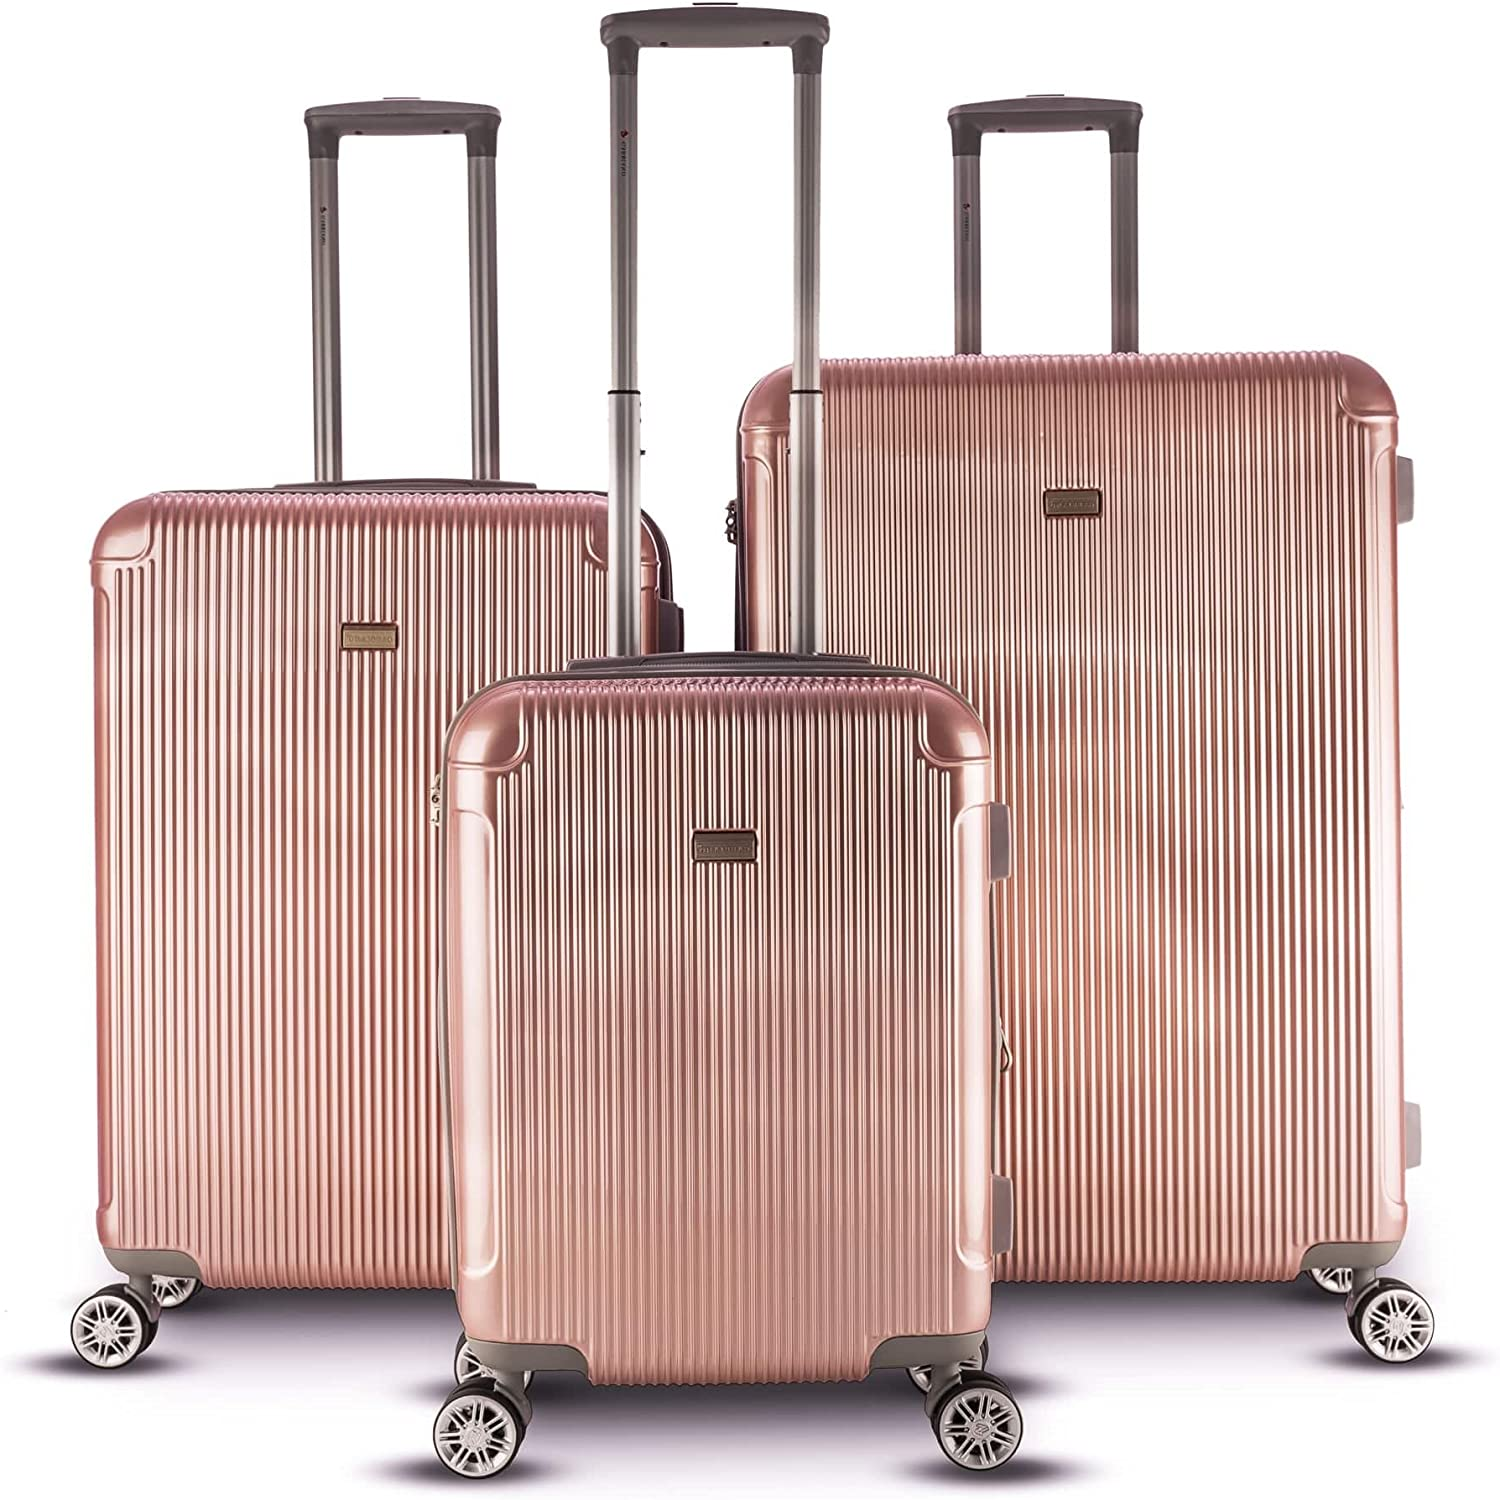 3 Piece Solid Geometric Stripes Theme Spinner Lightweight Expandable Carry  On Luggage Set Suitcases, Vertical Lines Design, Hardsided, Hardshell,  Multi Compartment, Fashion Hard Travel Bags, Rose Gold: Amazon.ca: Clothing  & Accessories